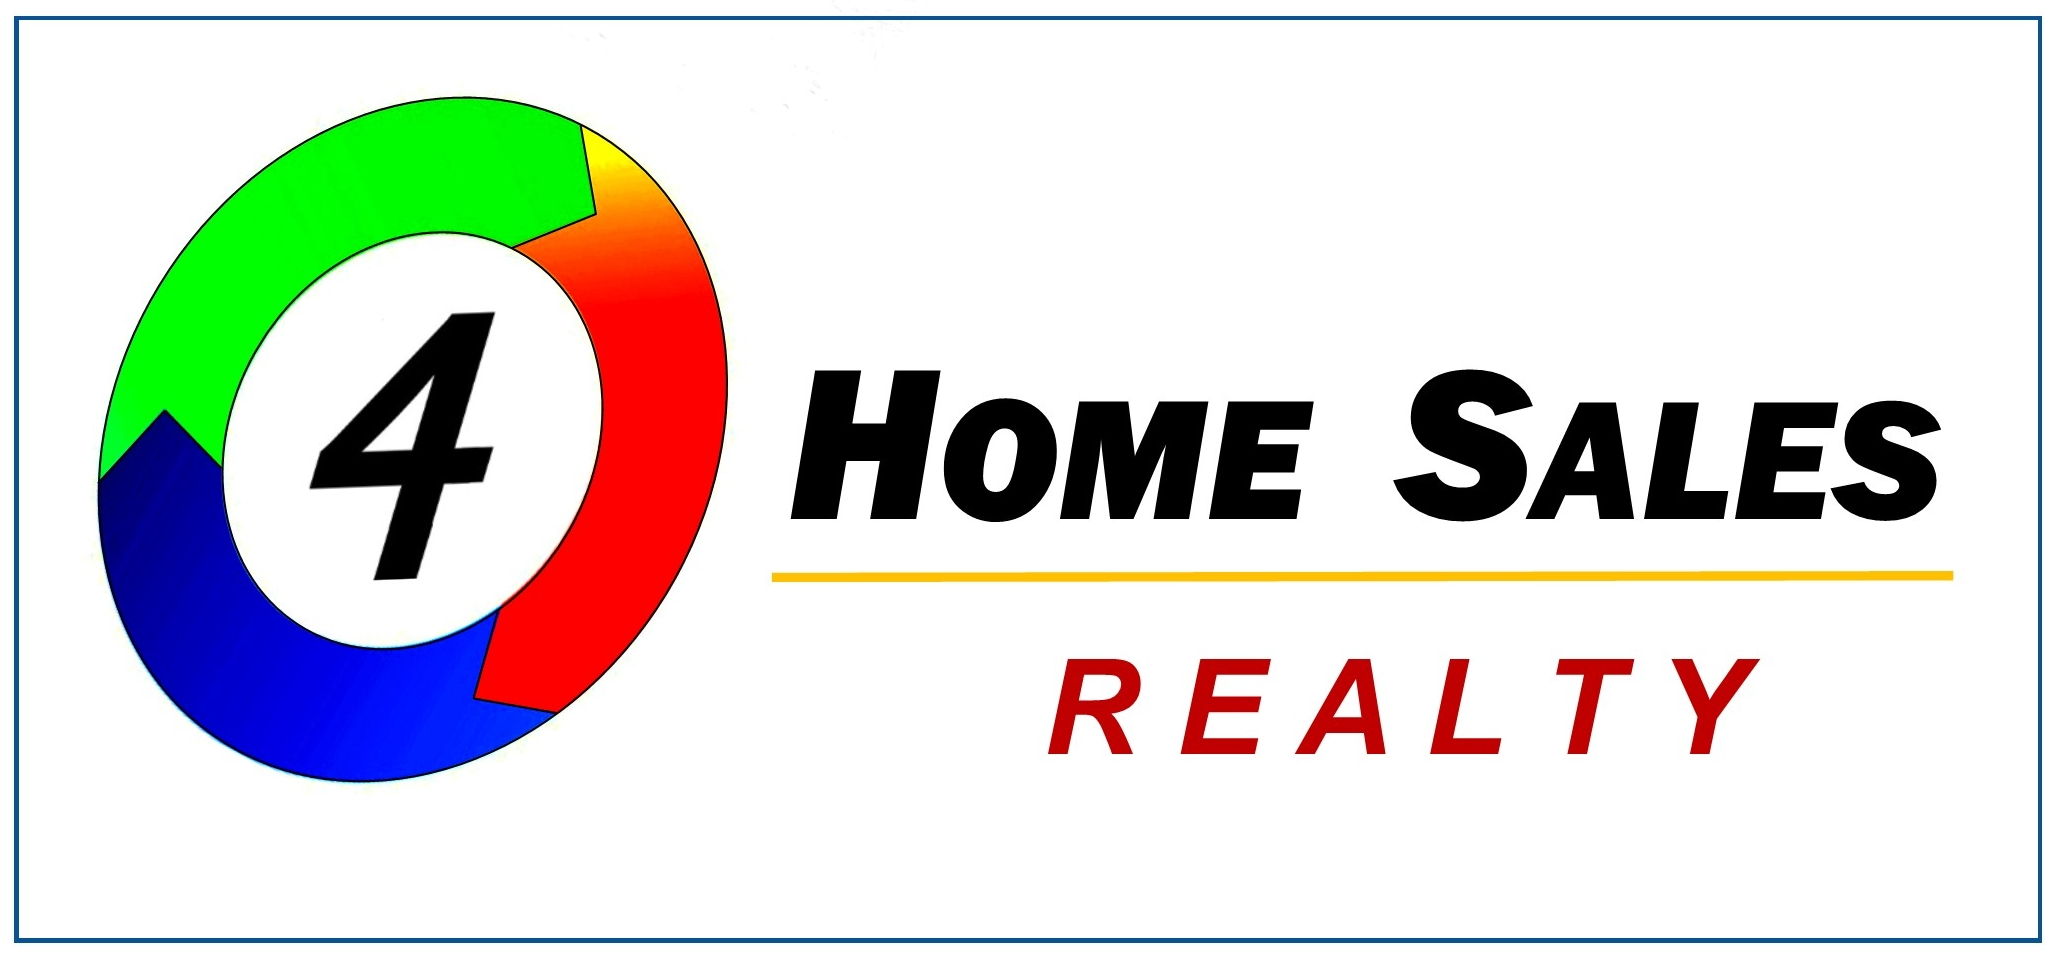 4 HOME SALES - Realty